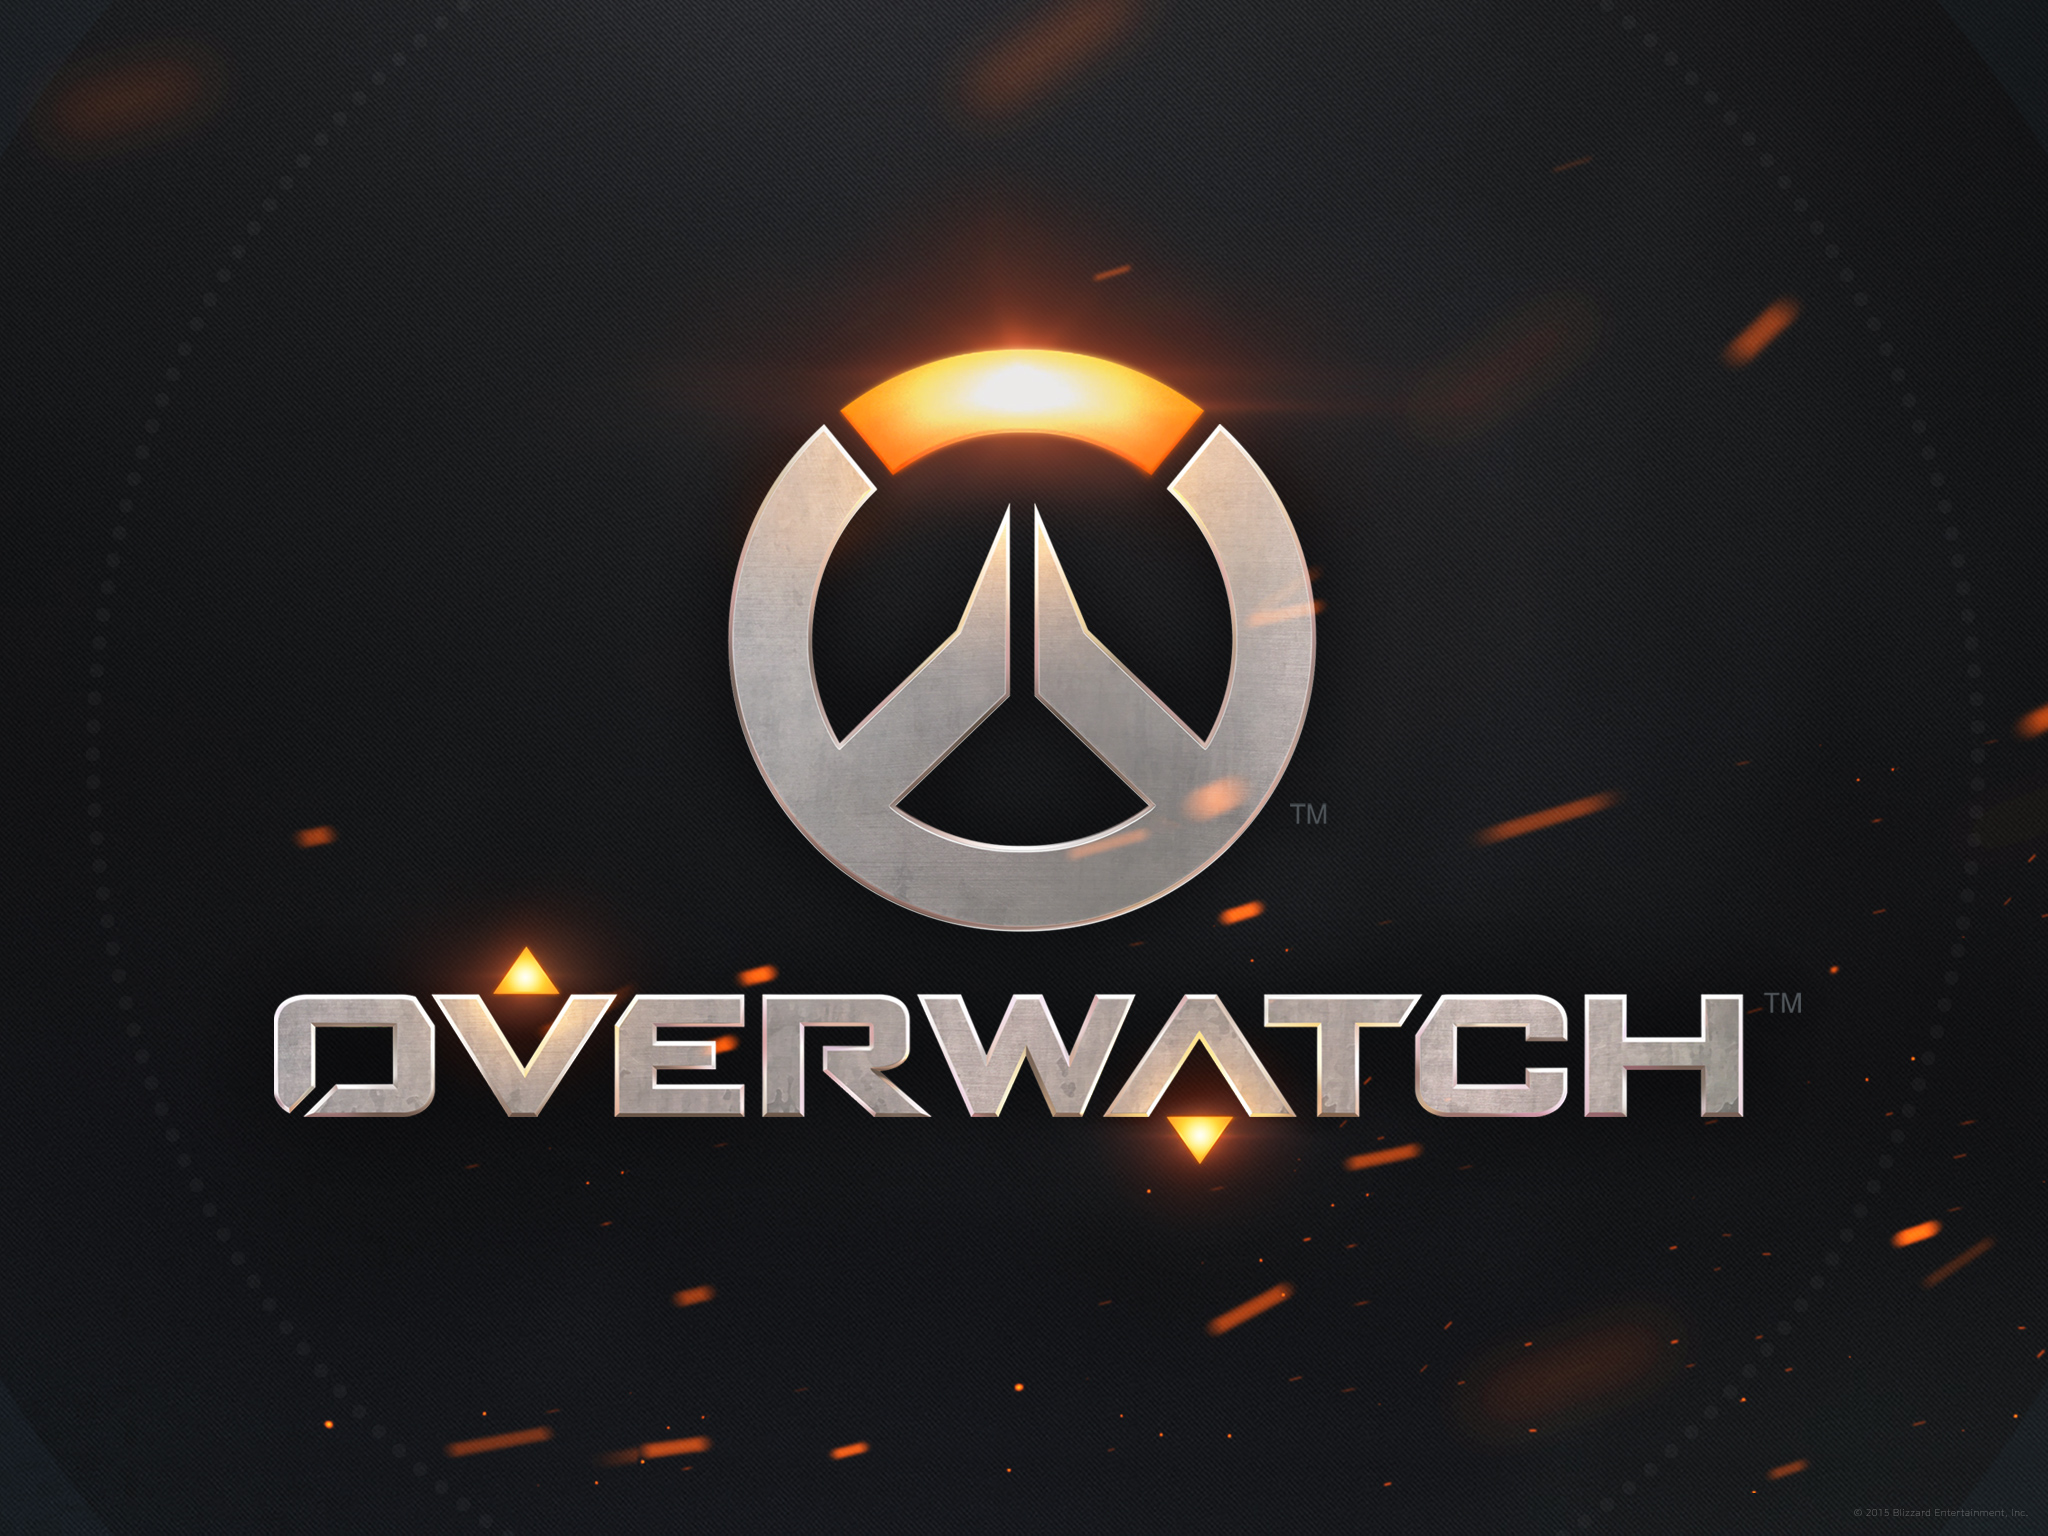 Image from playoverwatch.com